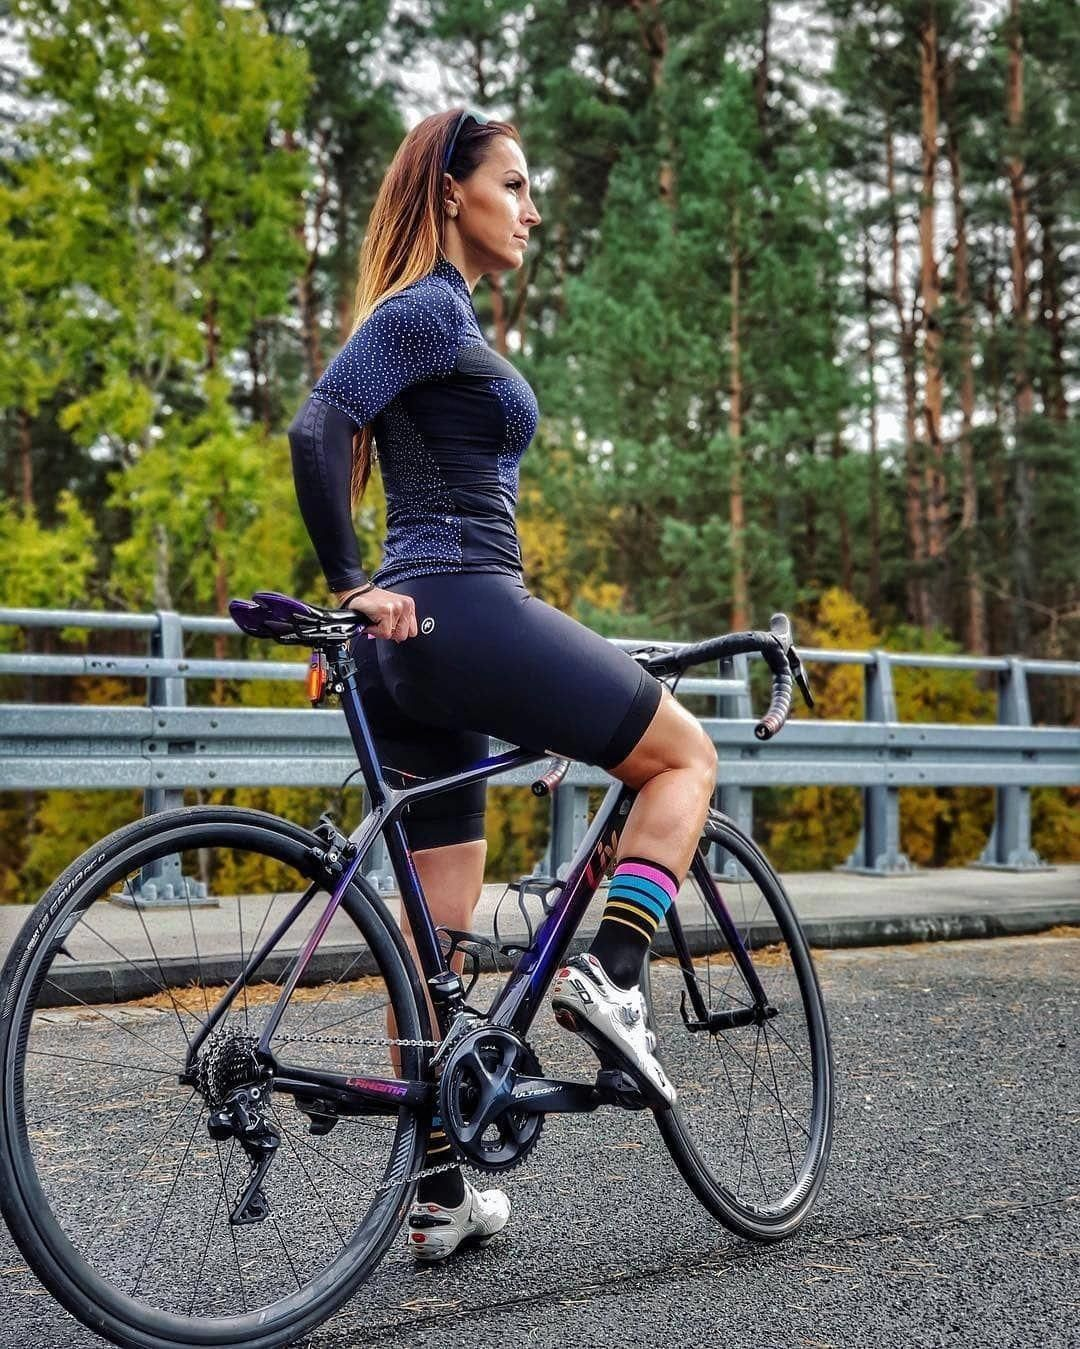 Types Of Bikes Bicycle Women Cycling Women Bicycle Girl